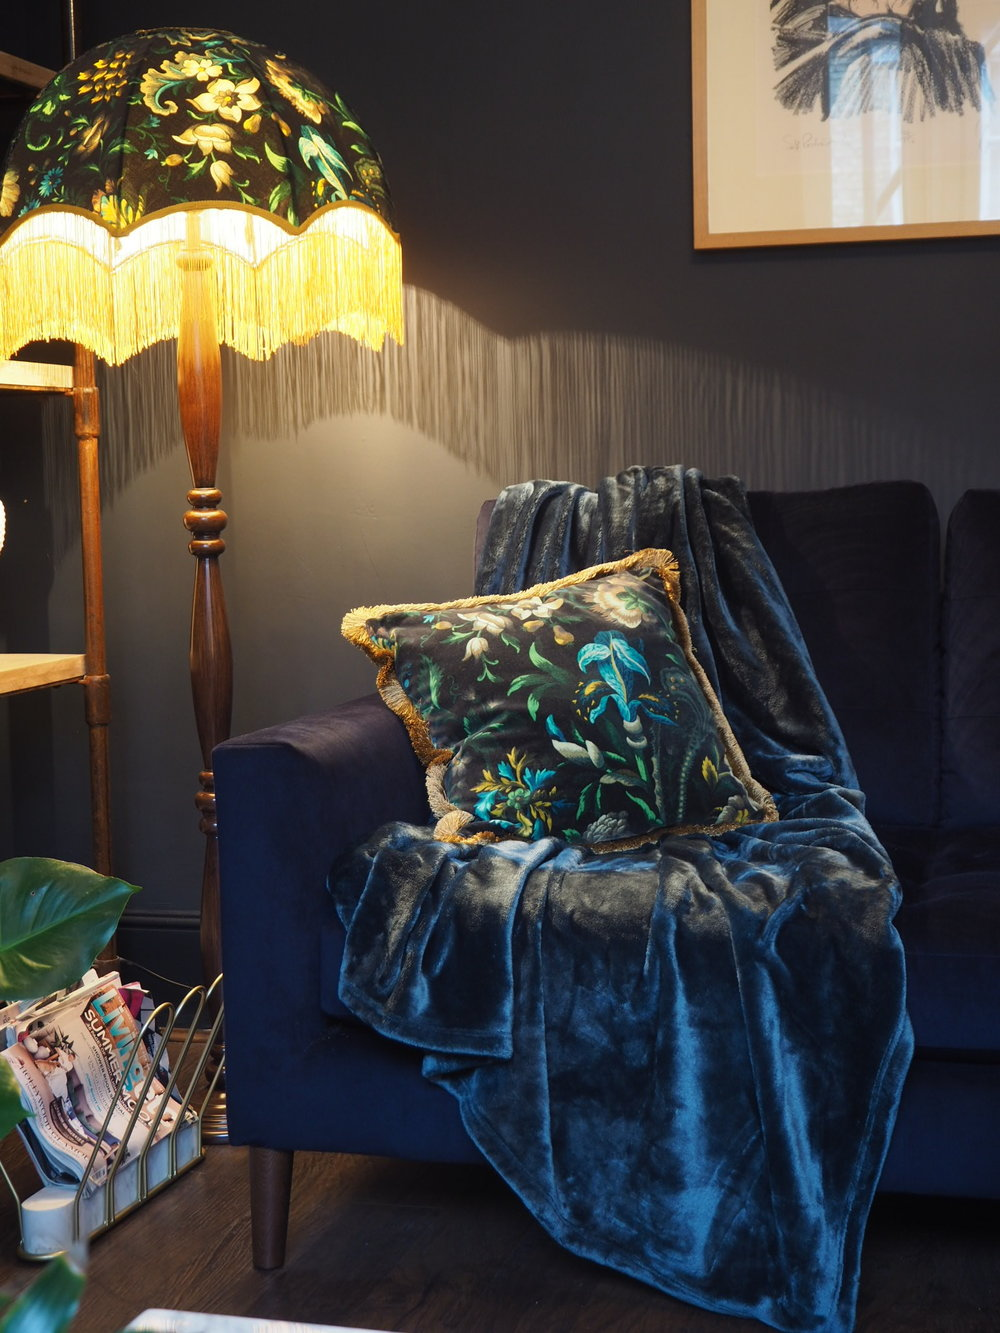 House of hackney dark lounge and cosy wayfair throw